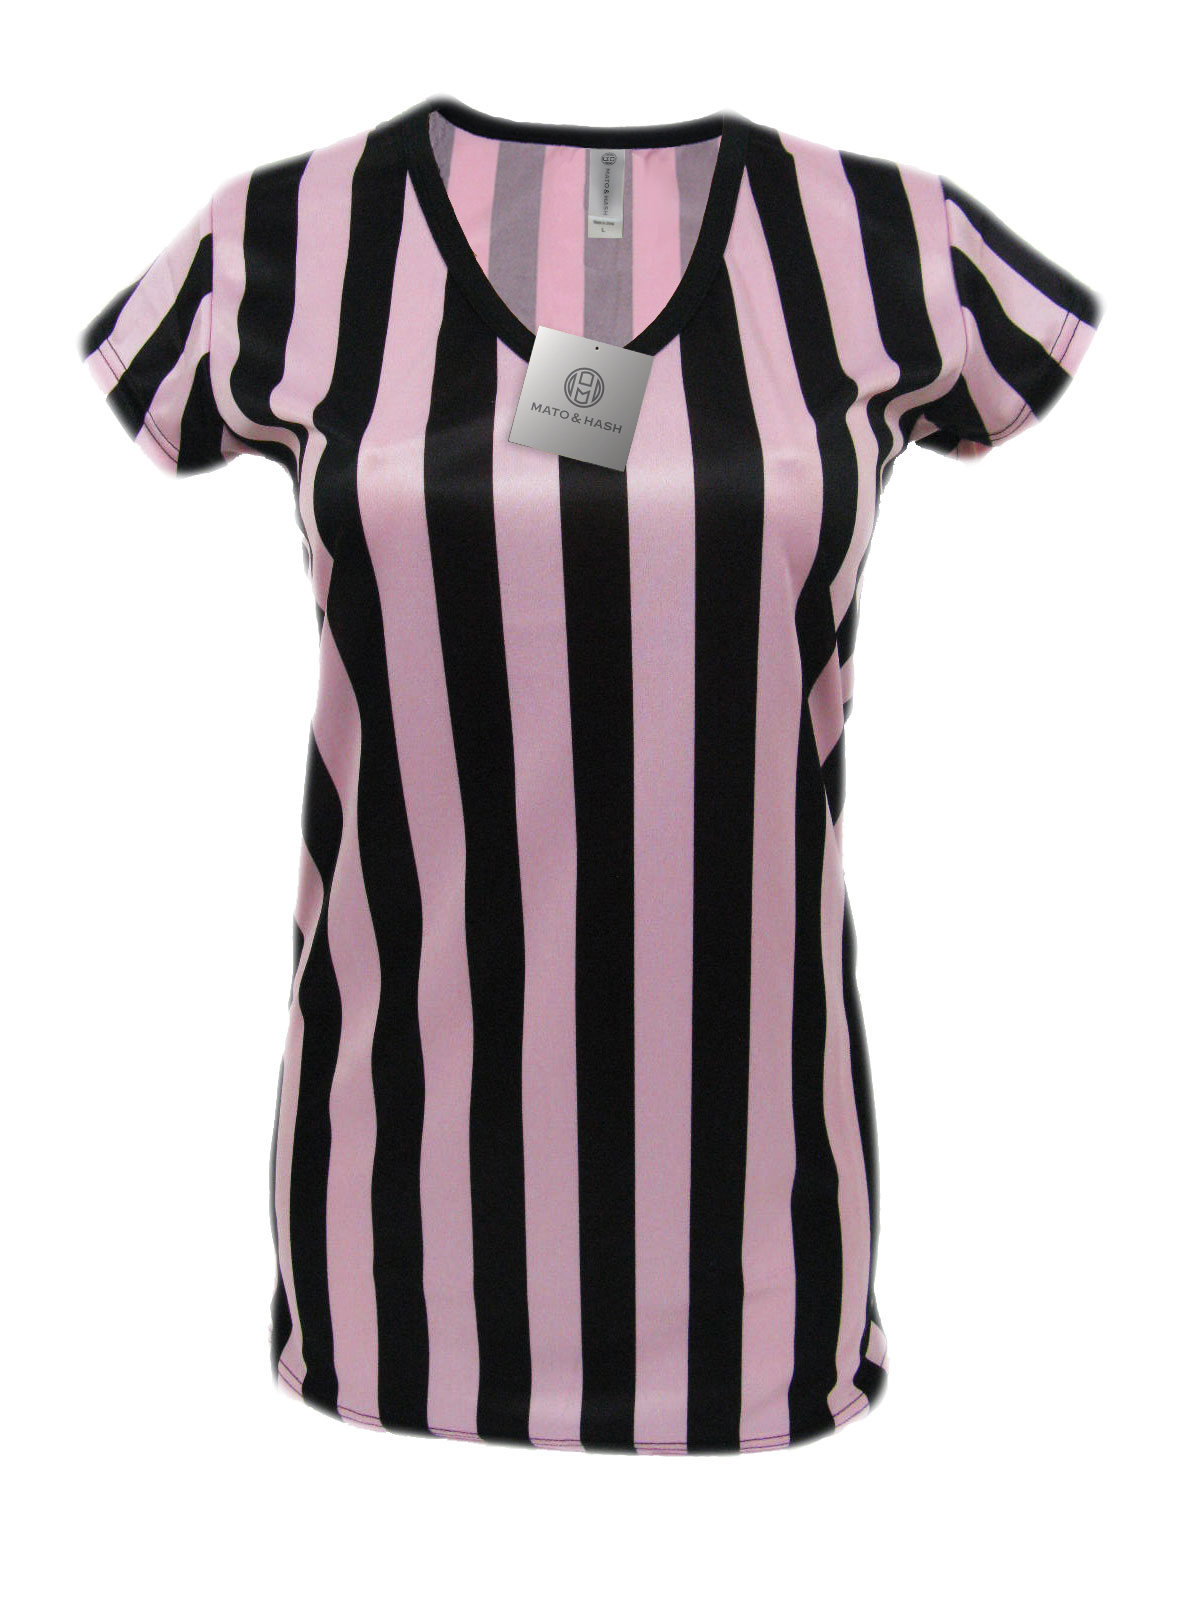 Shirts clipart ref. Ladies pink referee breast